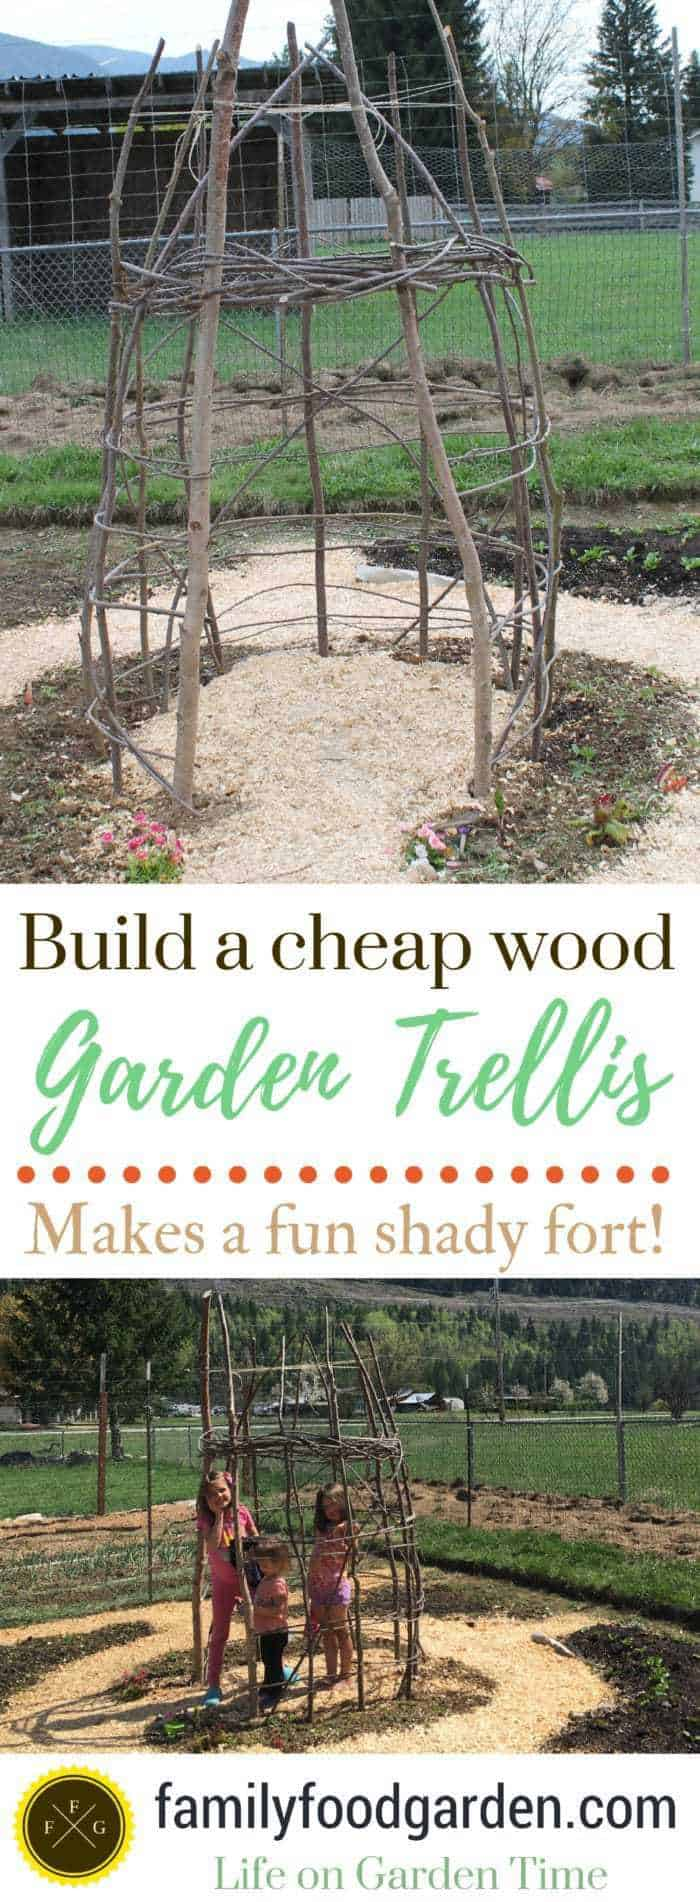 Great vertical garden design! Kids wooden playhouse. Make this cheap garden trellis weaving repurposed wooden branches